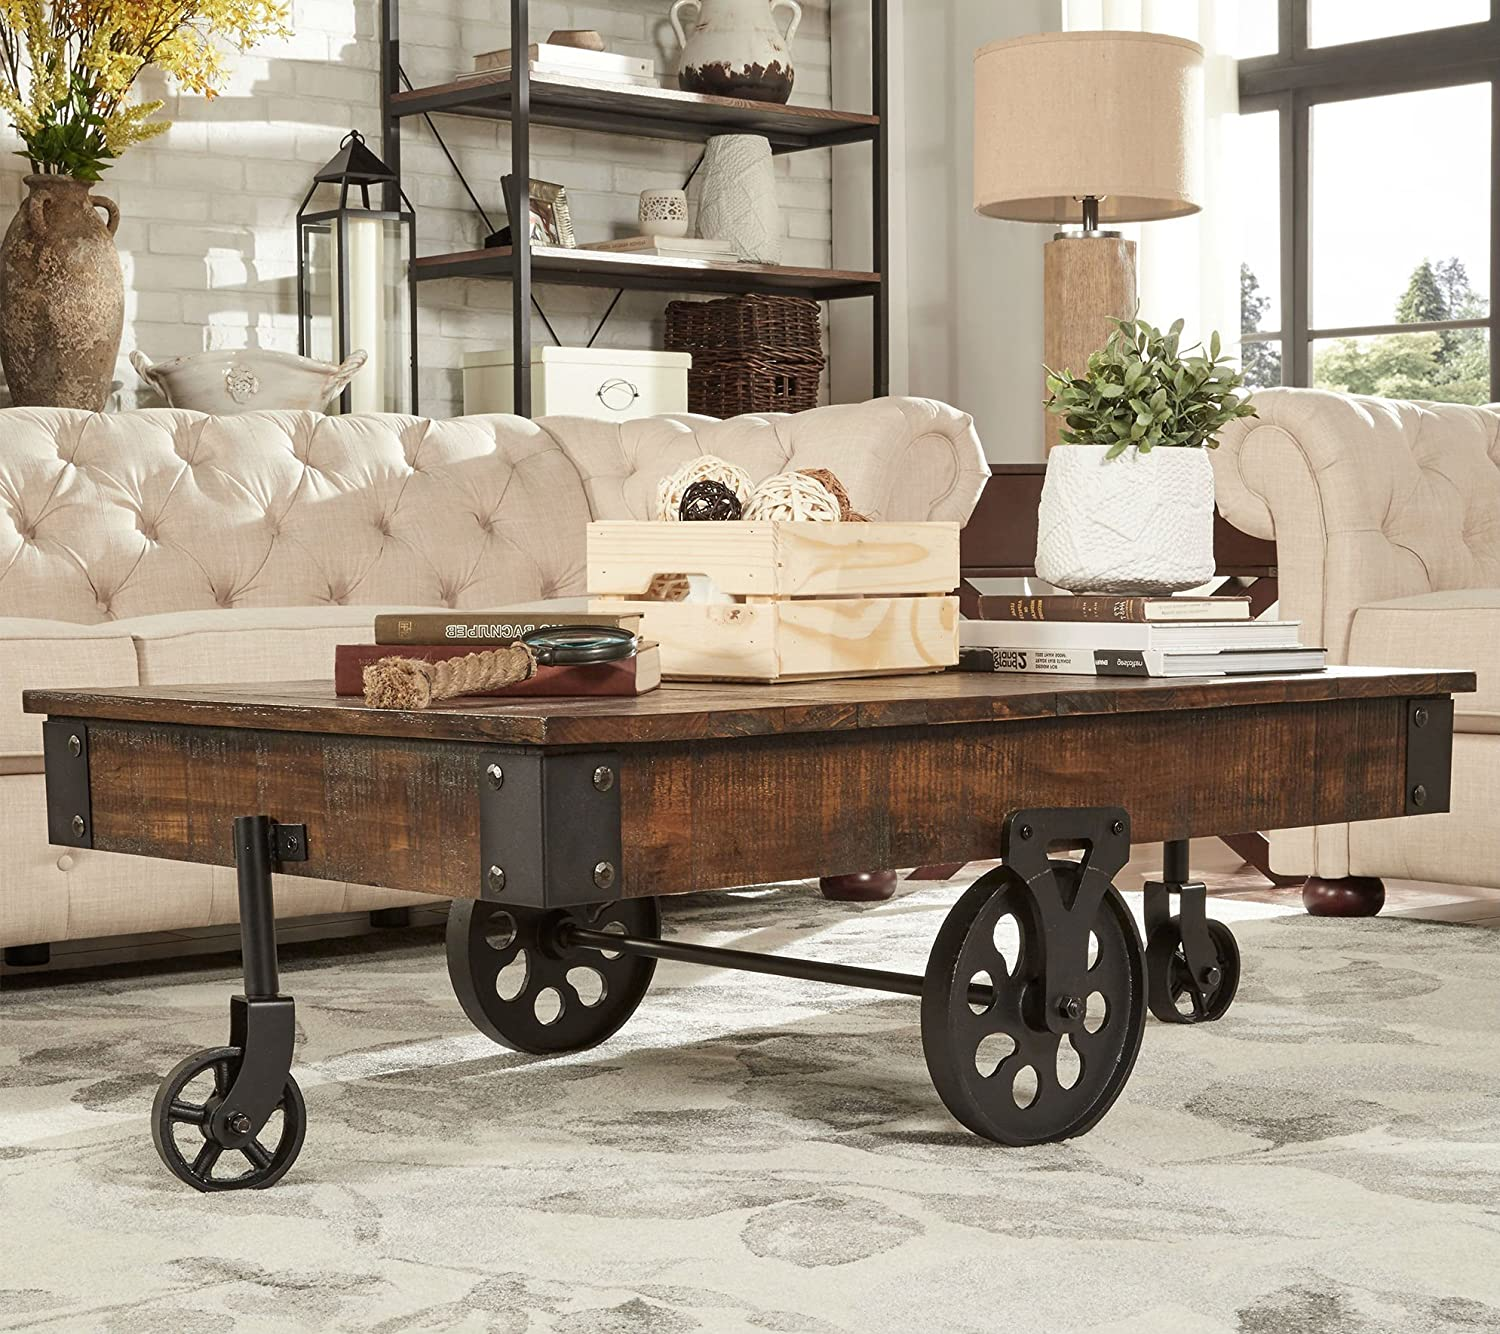 Amazon Com Brown Vintage Cocktail Table With Wheels Is Made From Rustic Weathered Pine Wood Has A Modern Feel Perfect As Ottoman Or Coffee Table Accent Furniture Piece For Front Room Or Living